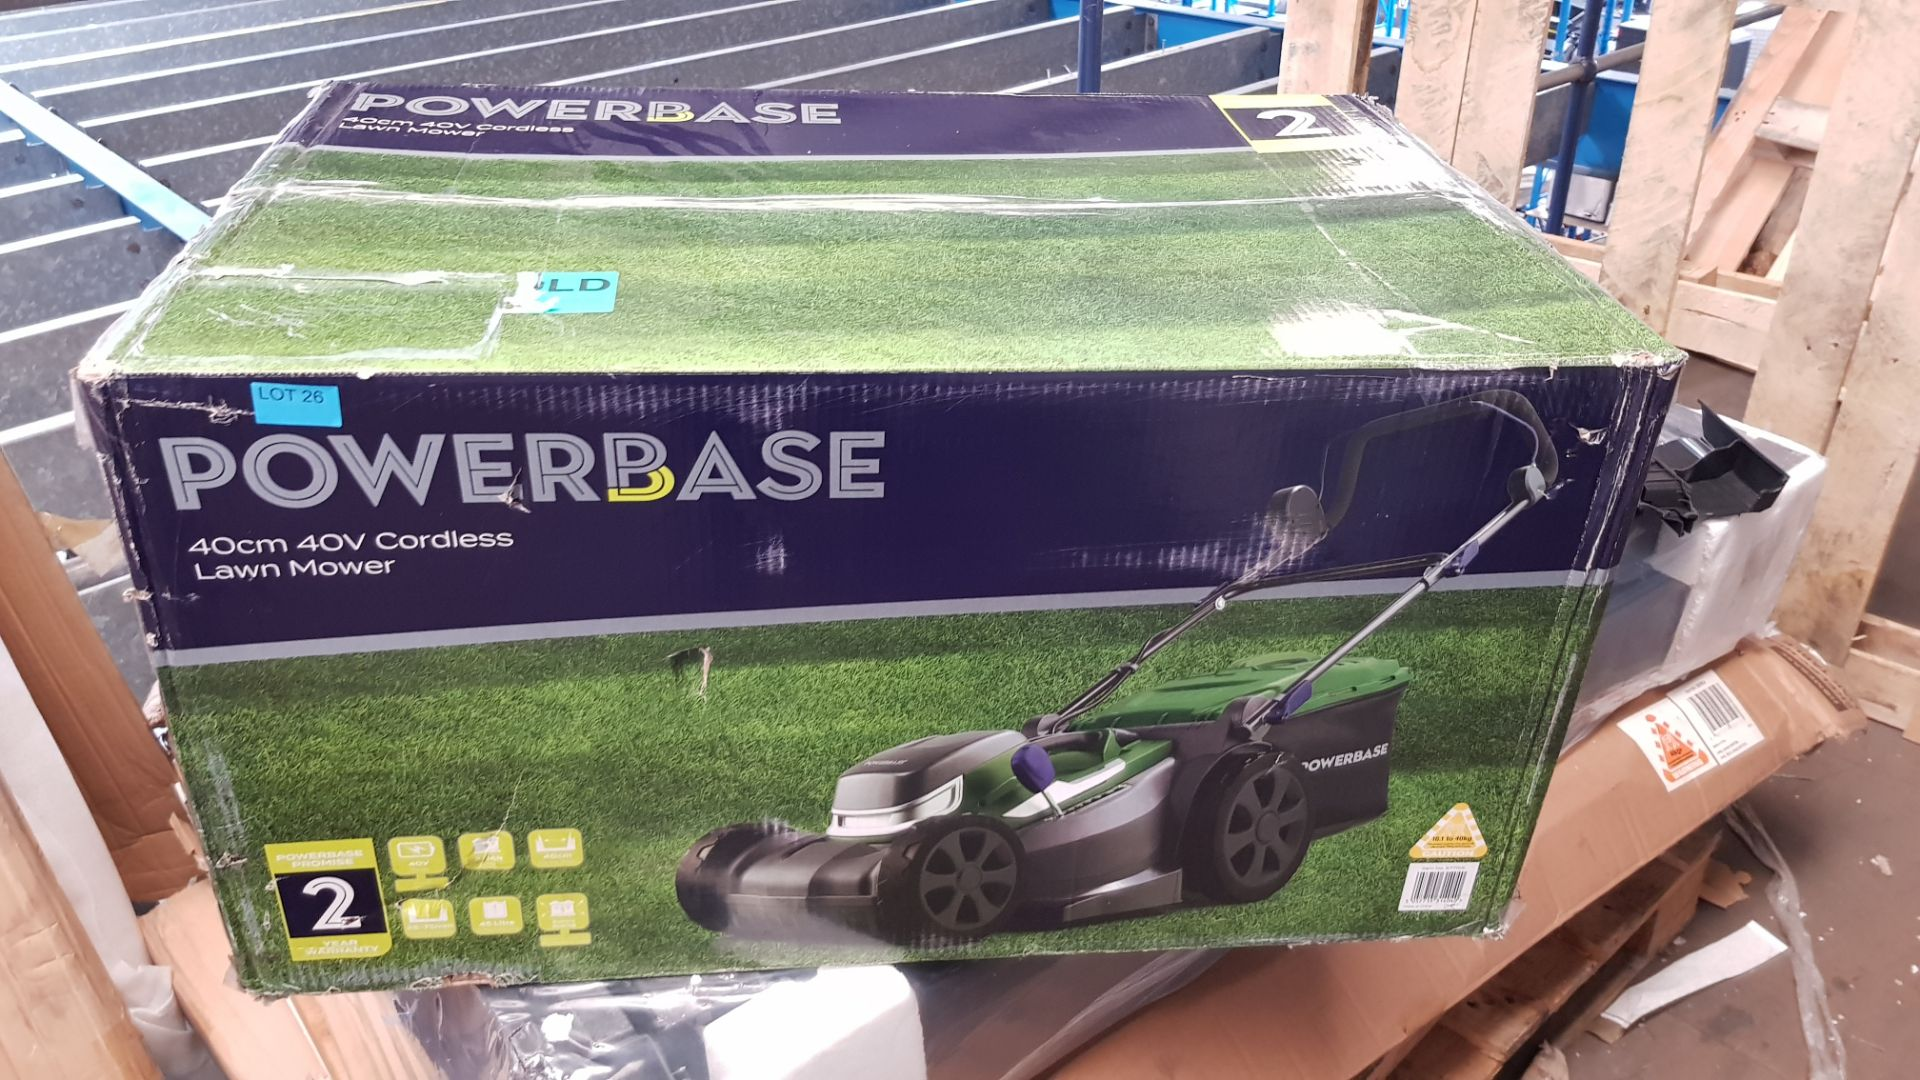 (P10) 1x Powerbase 40cm 40V Cordless Lawn Mower RRP £199. New, Sealed Undelivered Item. - Image 3 of 3